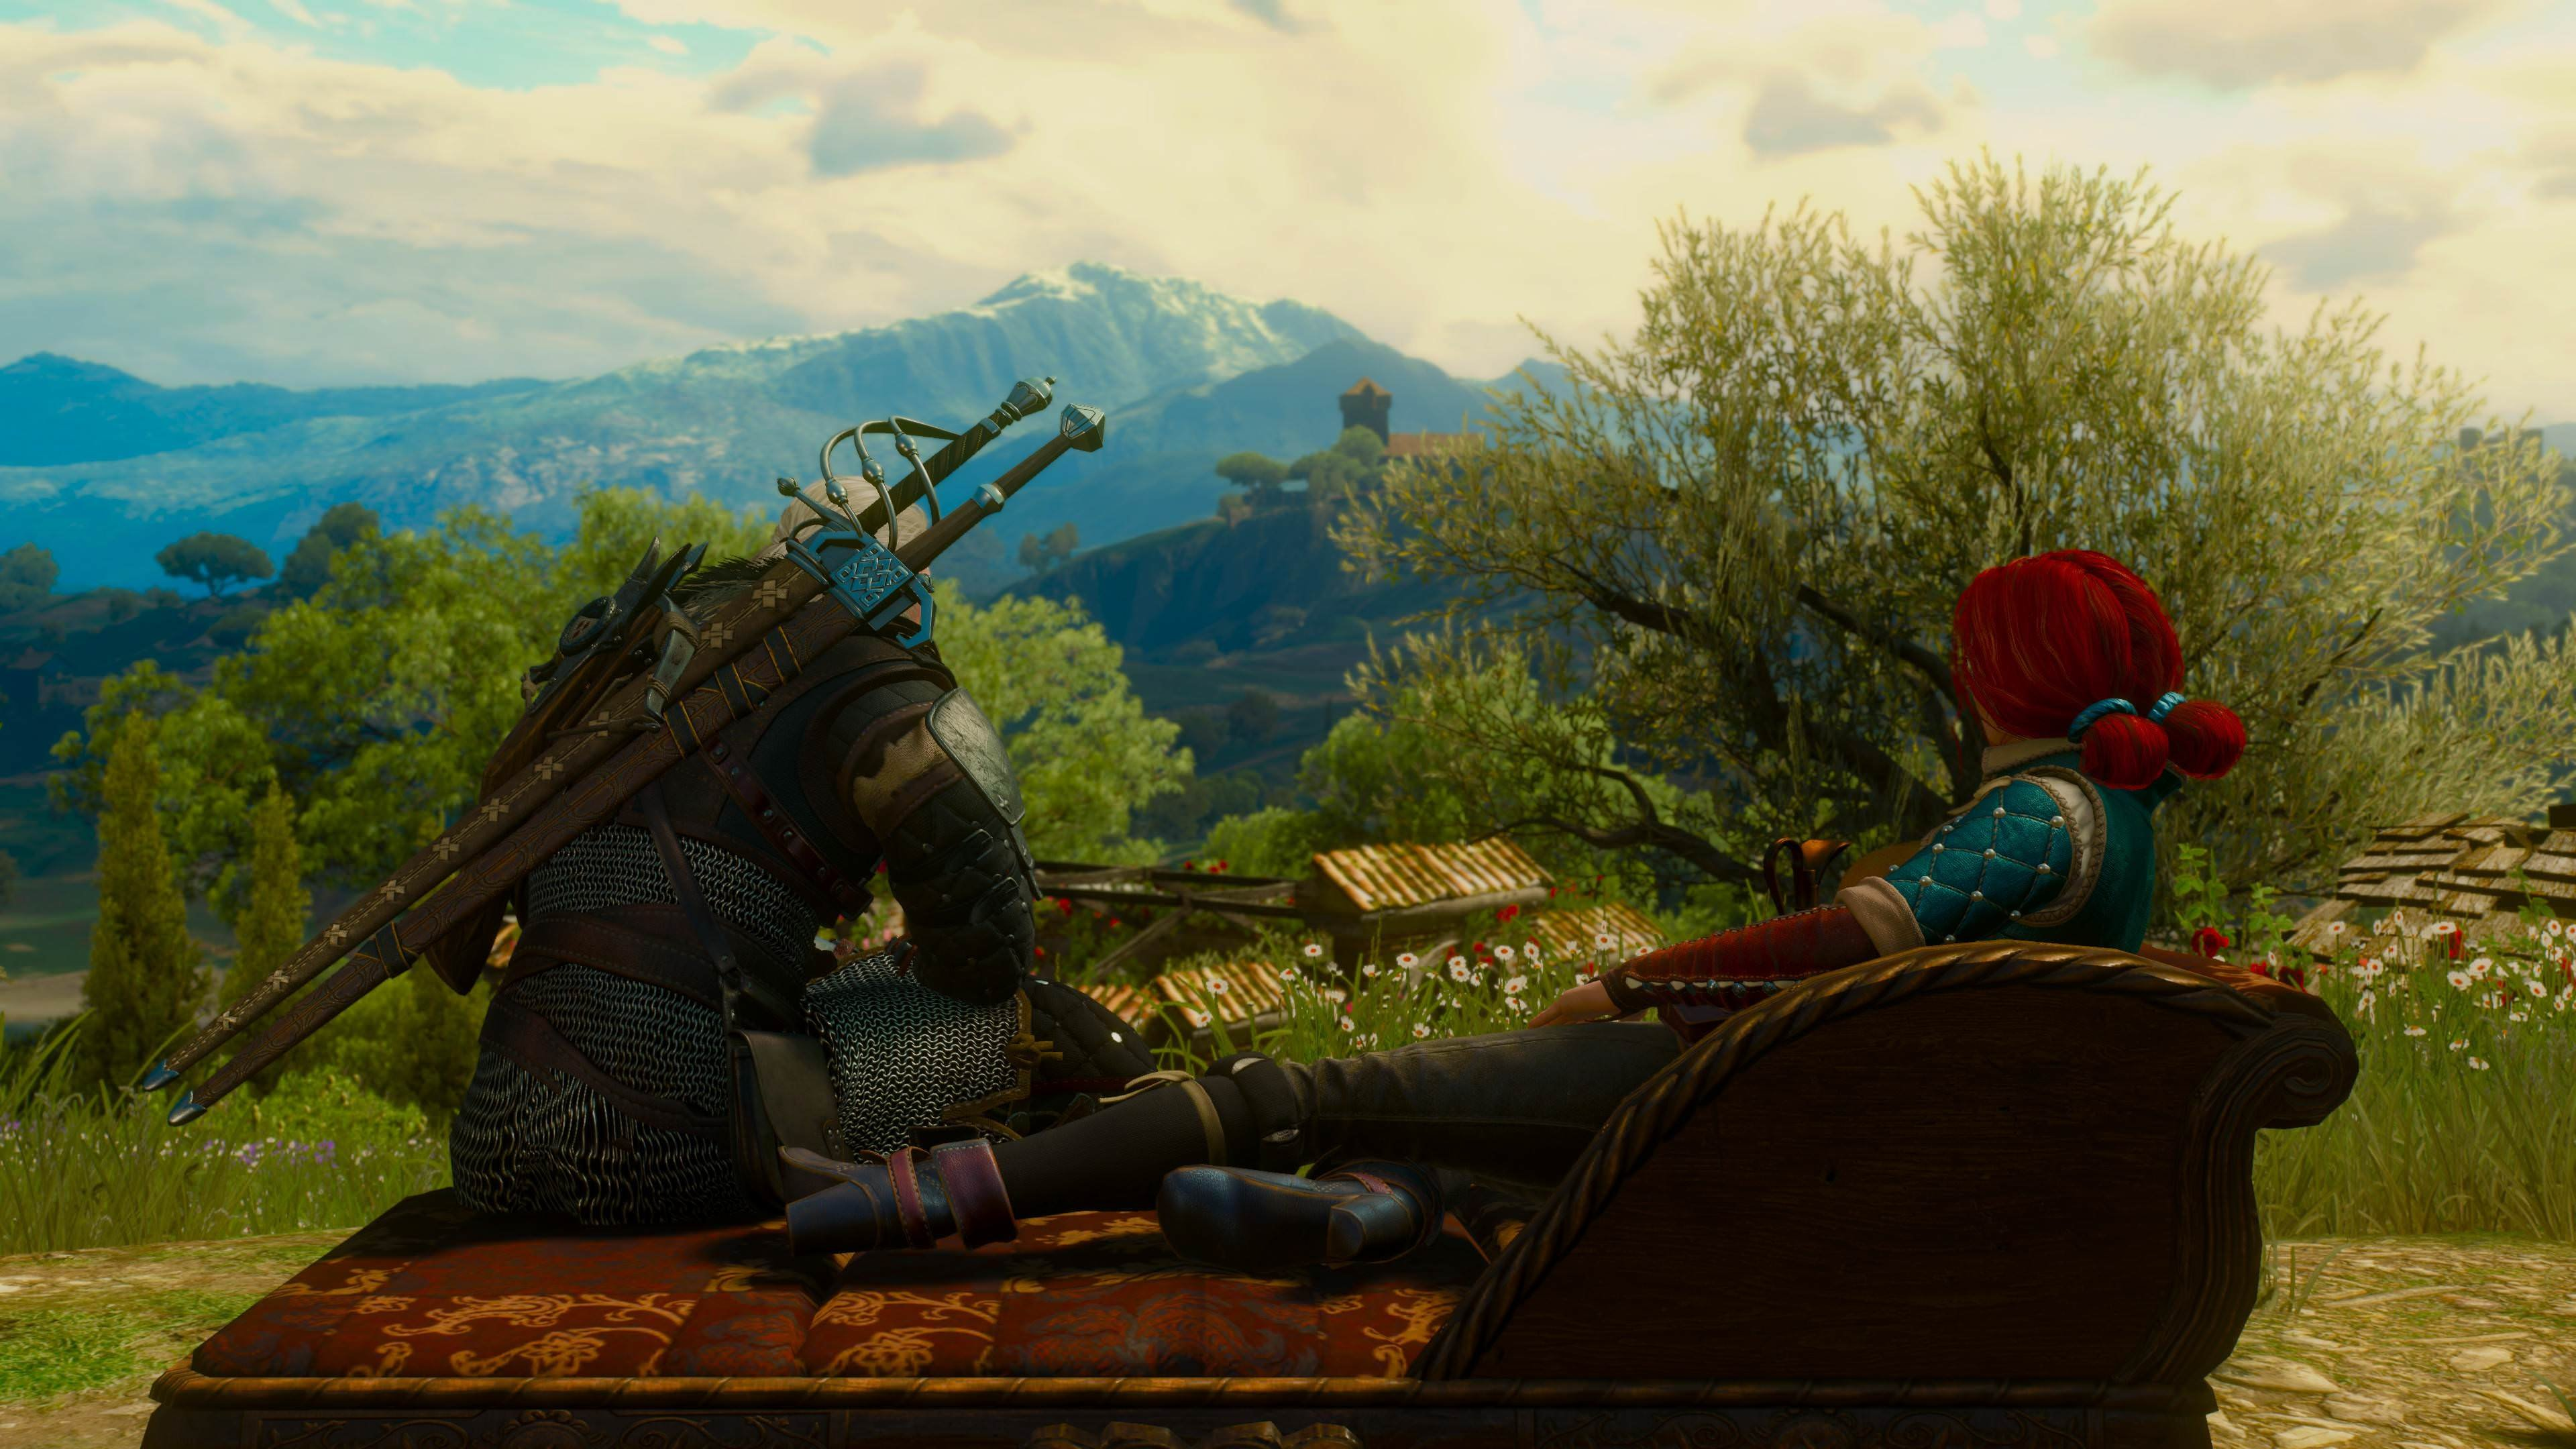 Witcher Wallpapers 4k For Your Phone And Desktop Screen